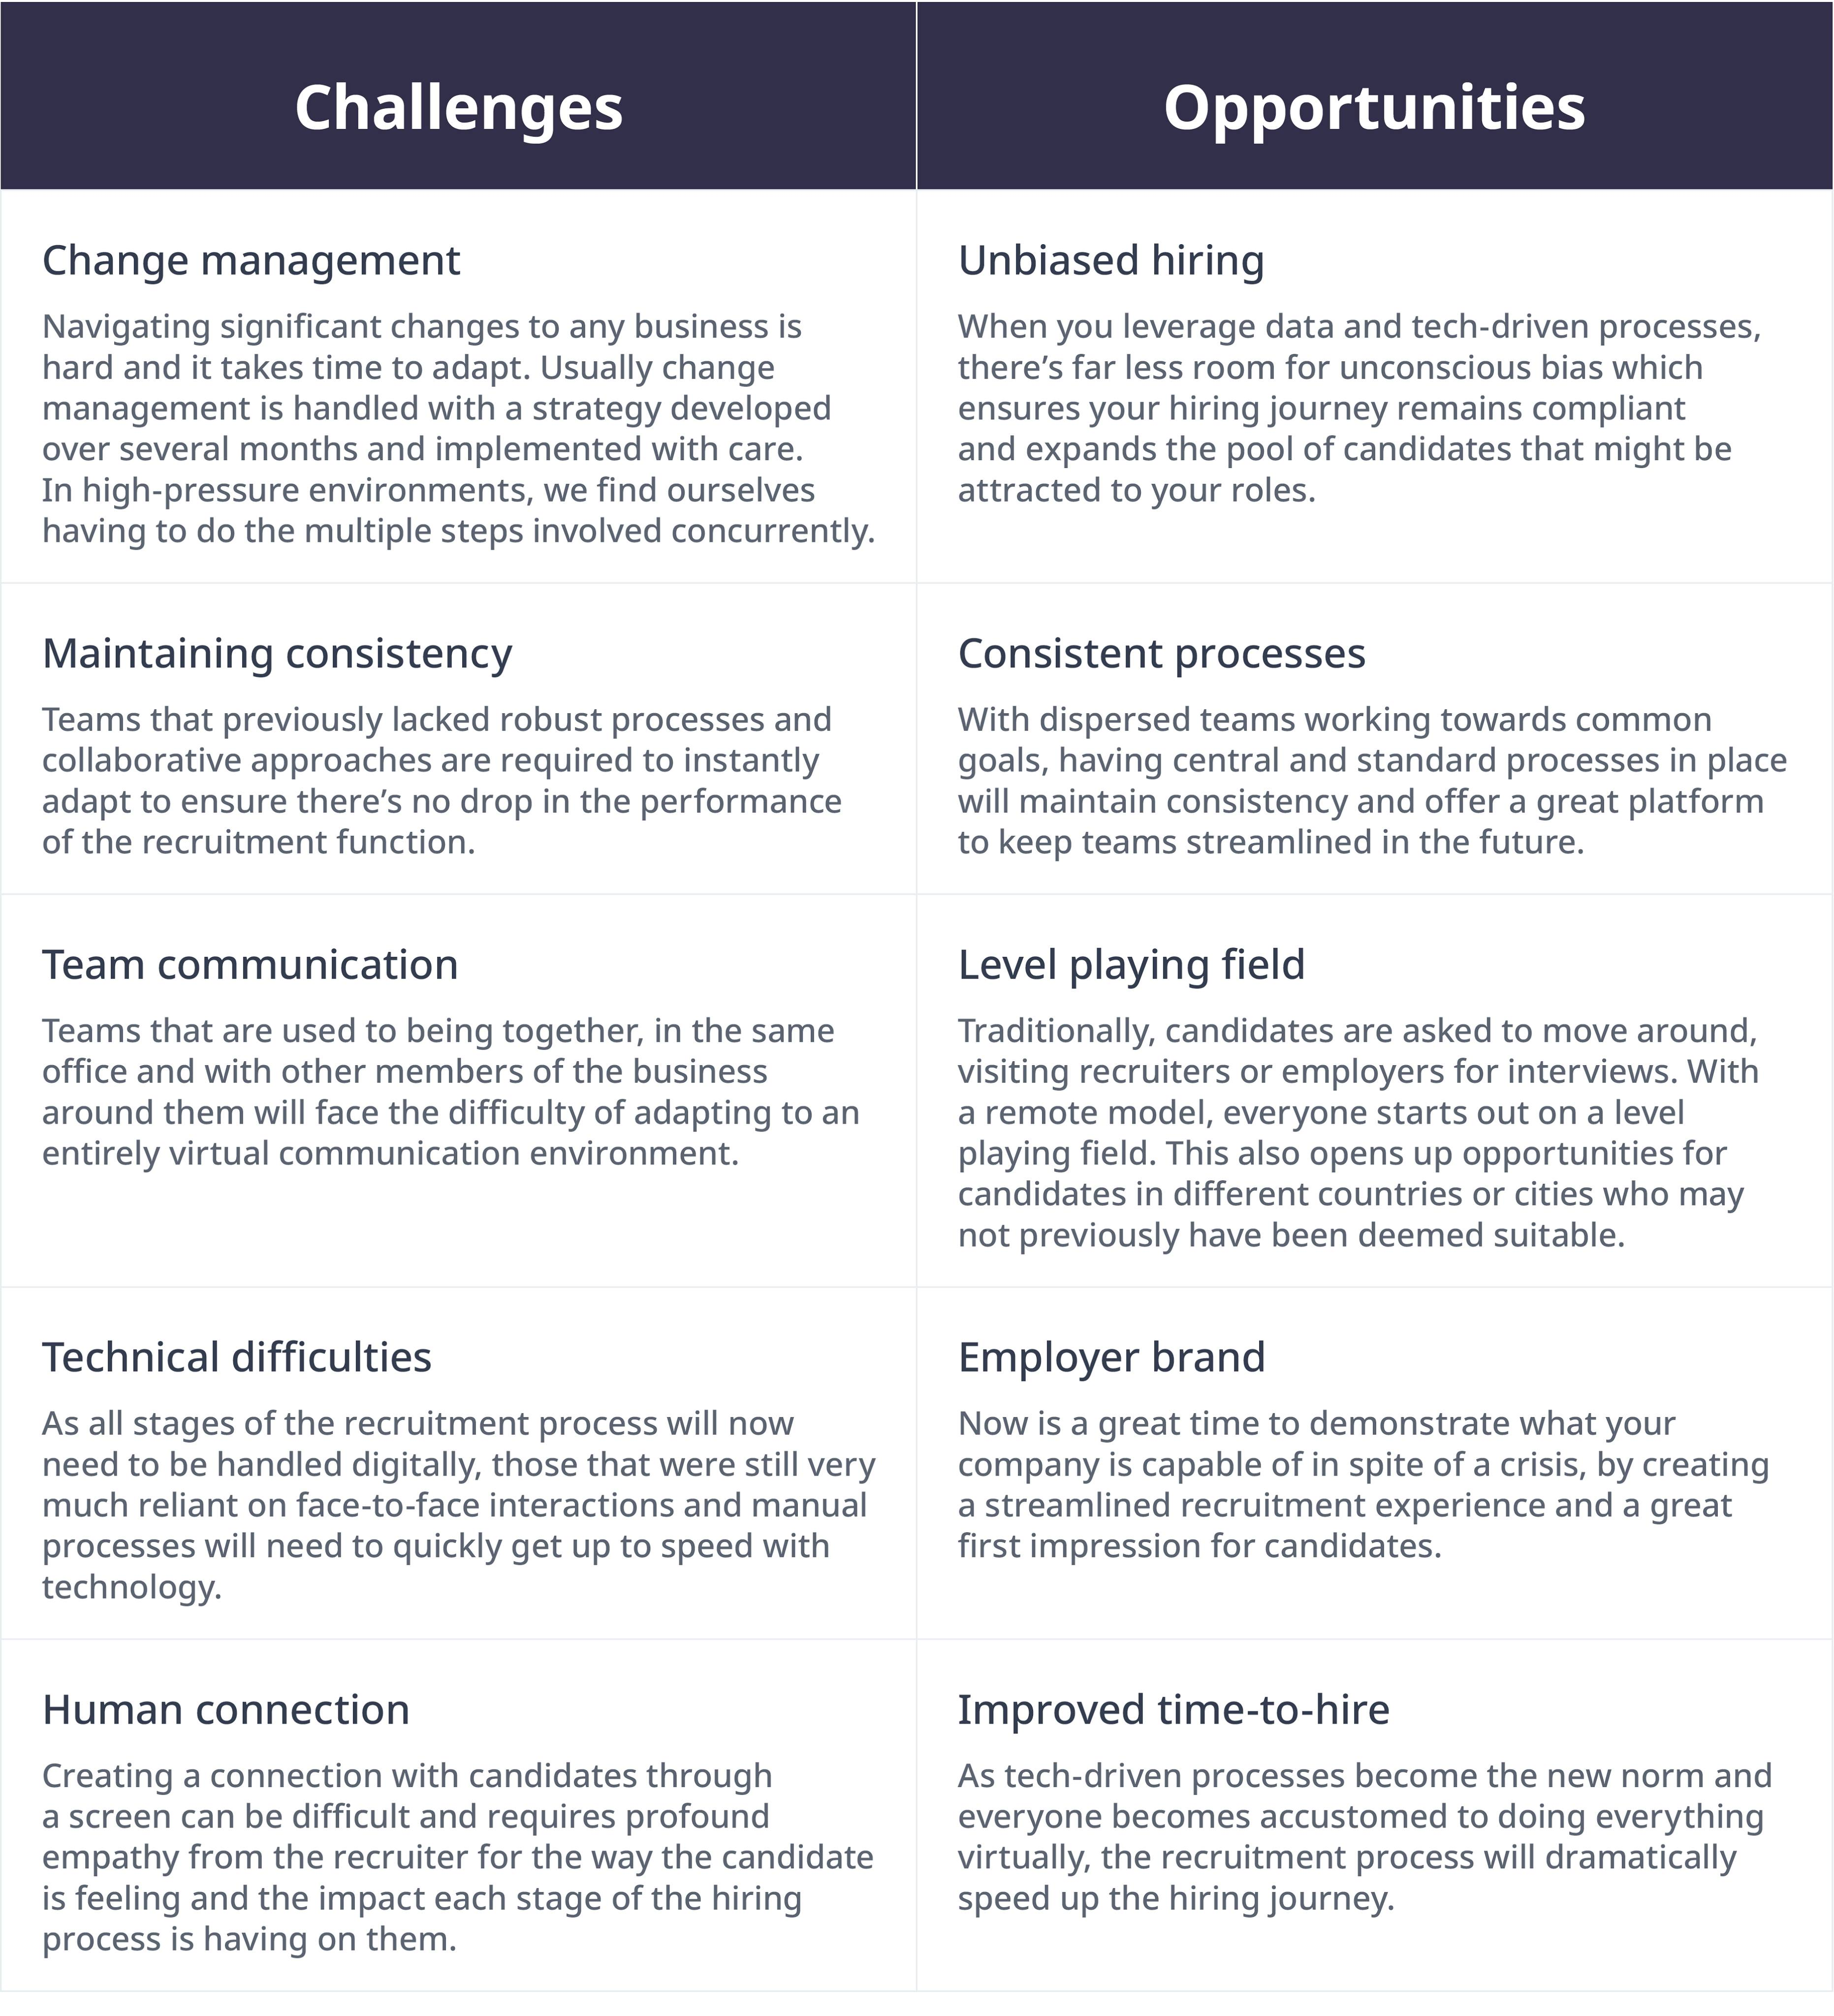 Challenges and opportunities table